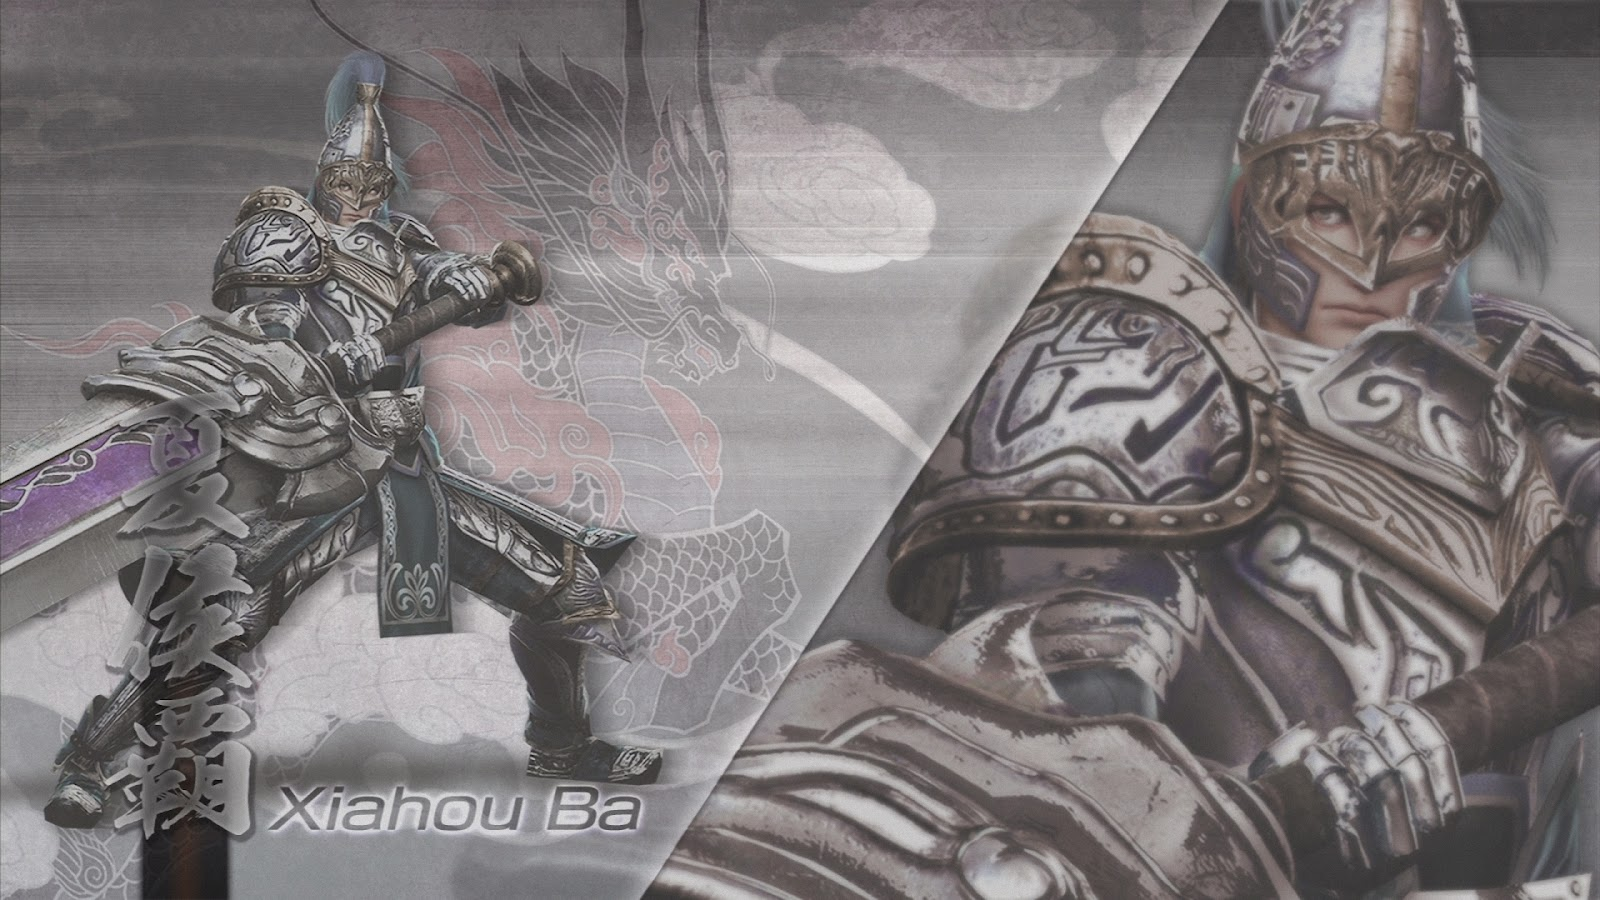 http://1.bp.blogspot.com/-wst_14SJt24/UBVVCSEAtWI/AAAAAAAAFCU/p3SWMKeYqu8/s1600/dynasty+warriors+7+wallpapers+6.jpg